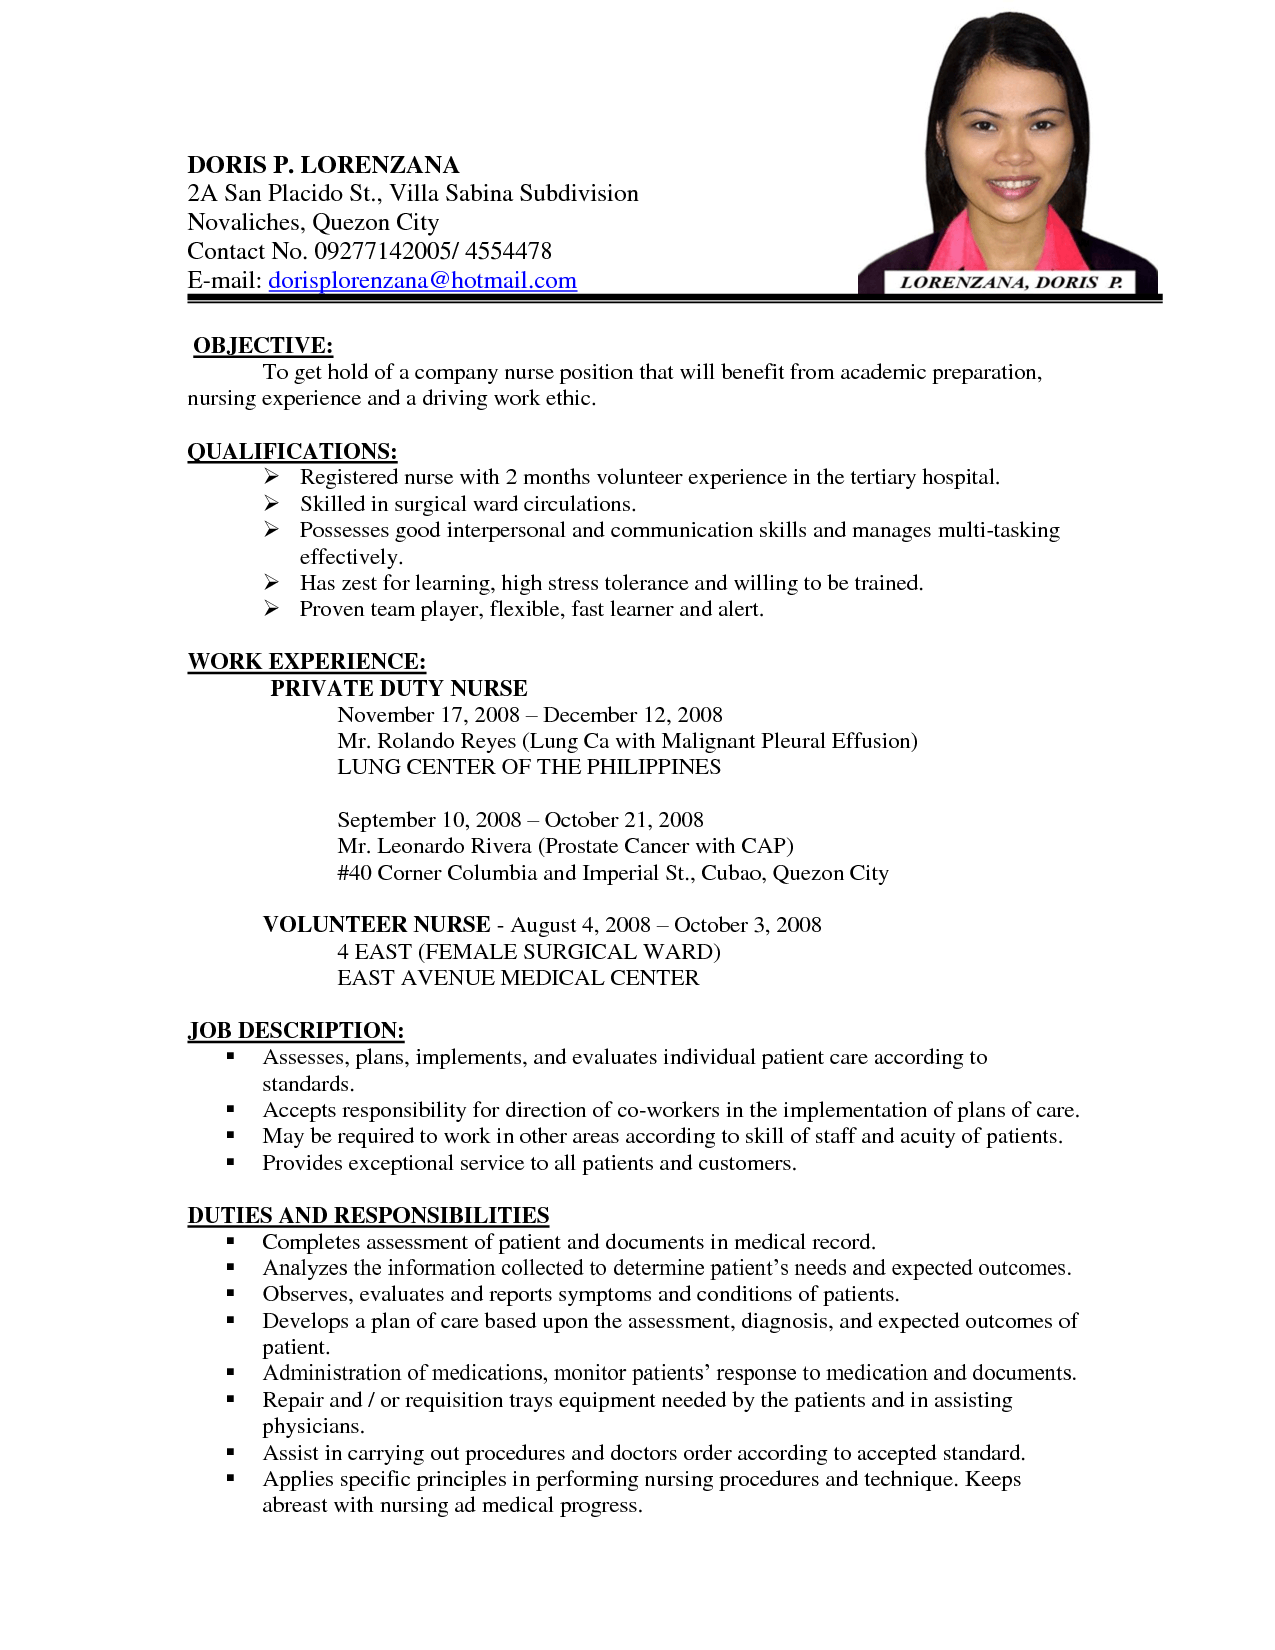 image result for curriculum vitae format for a nurse - Resume Format For Nurses